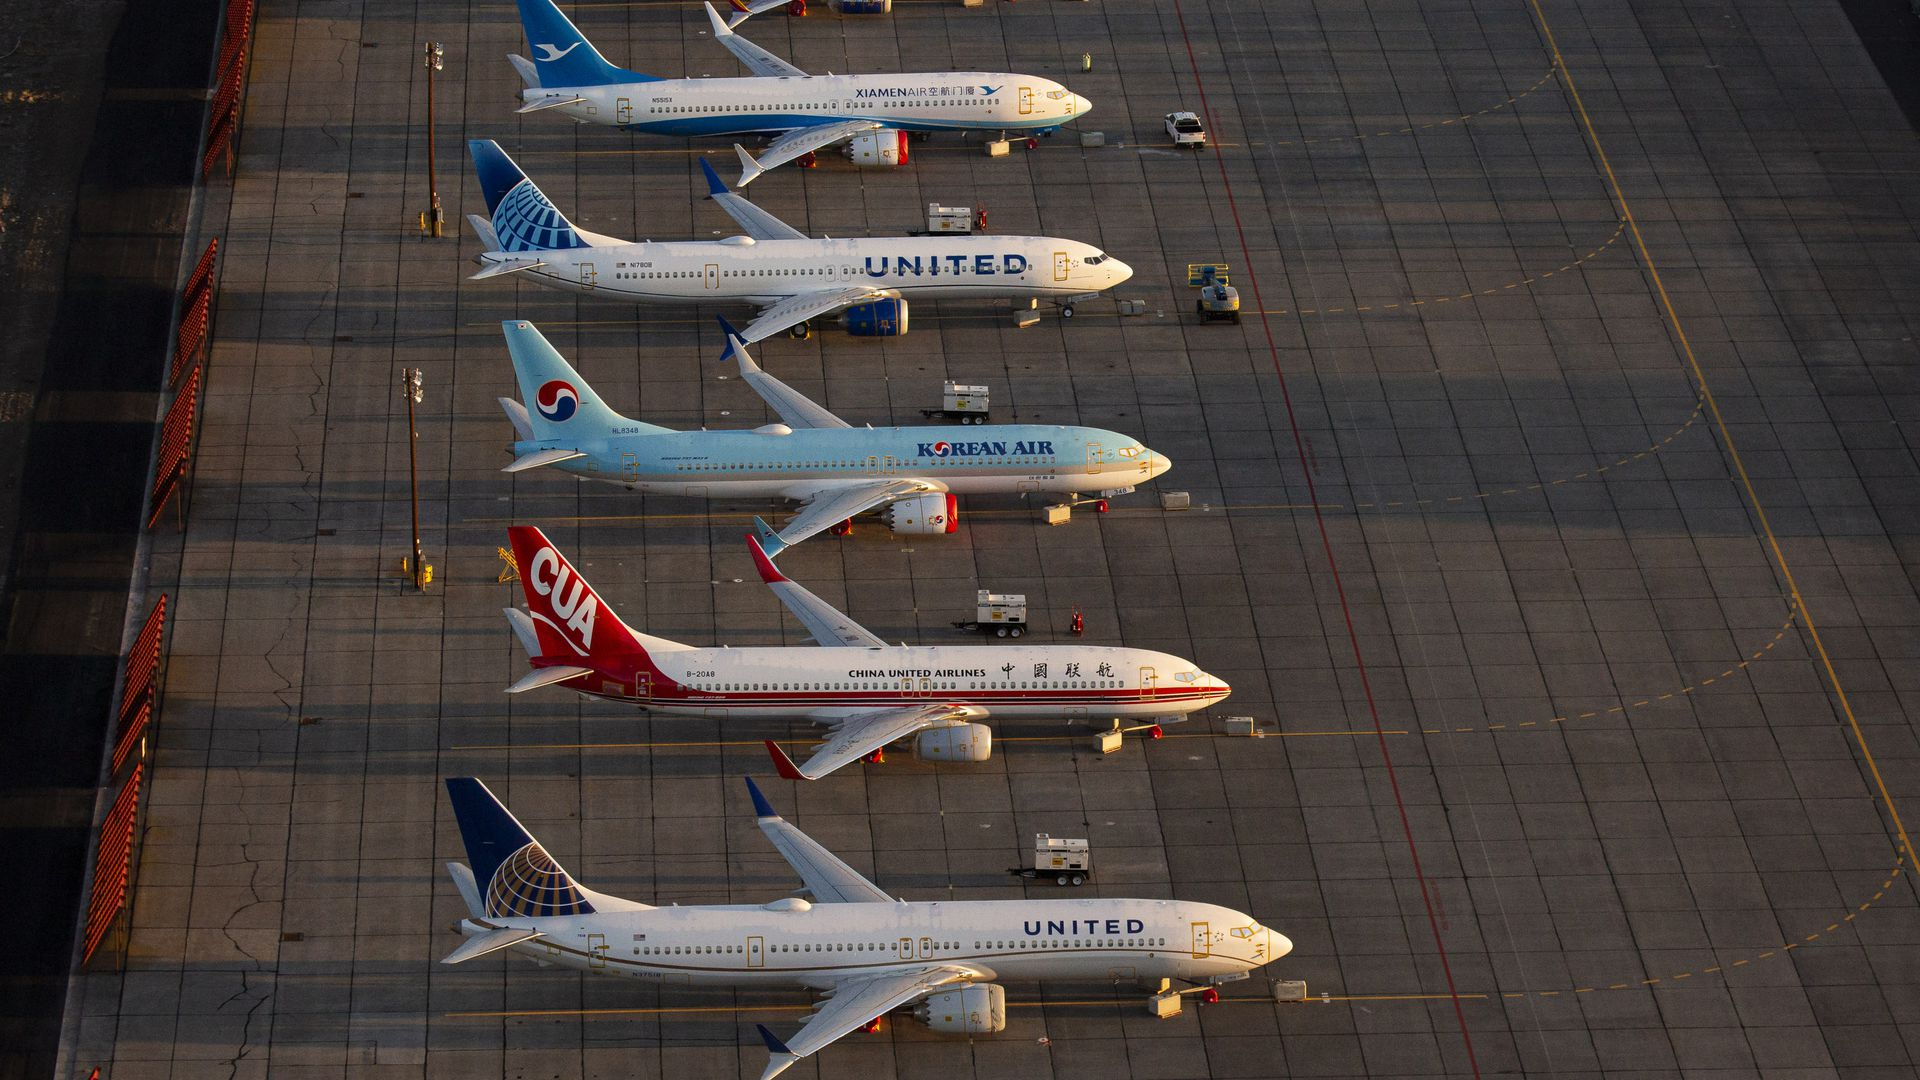 FAA says it will inspect each Boeing 737 MAX before delivery